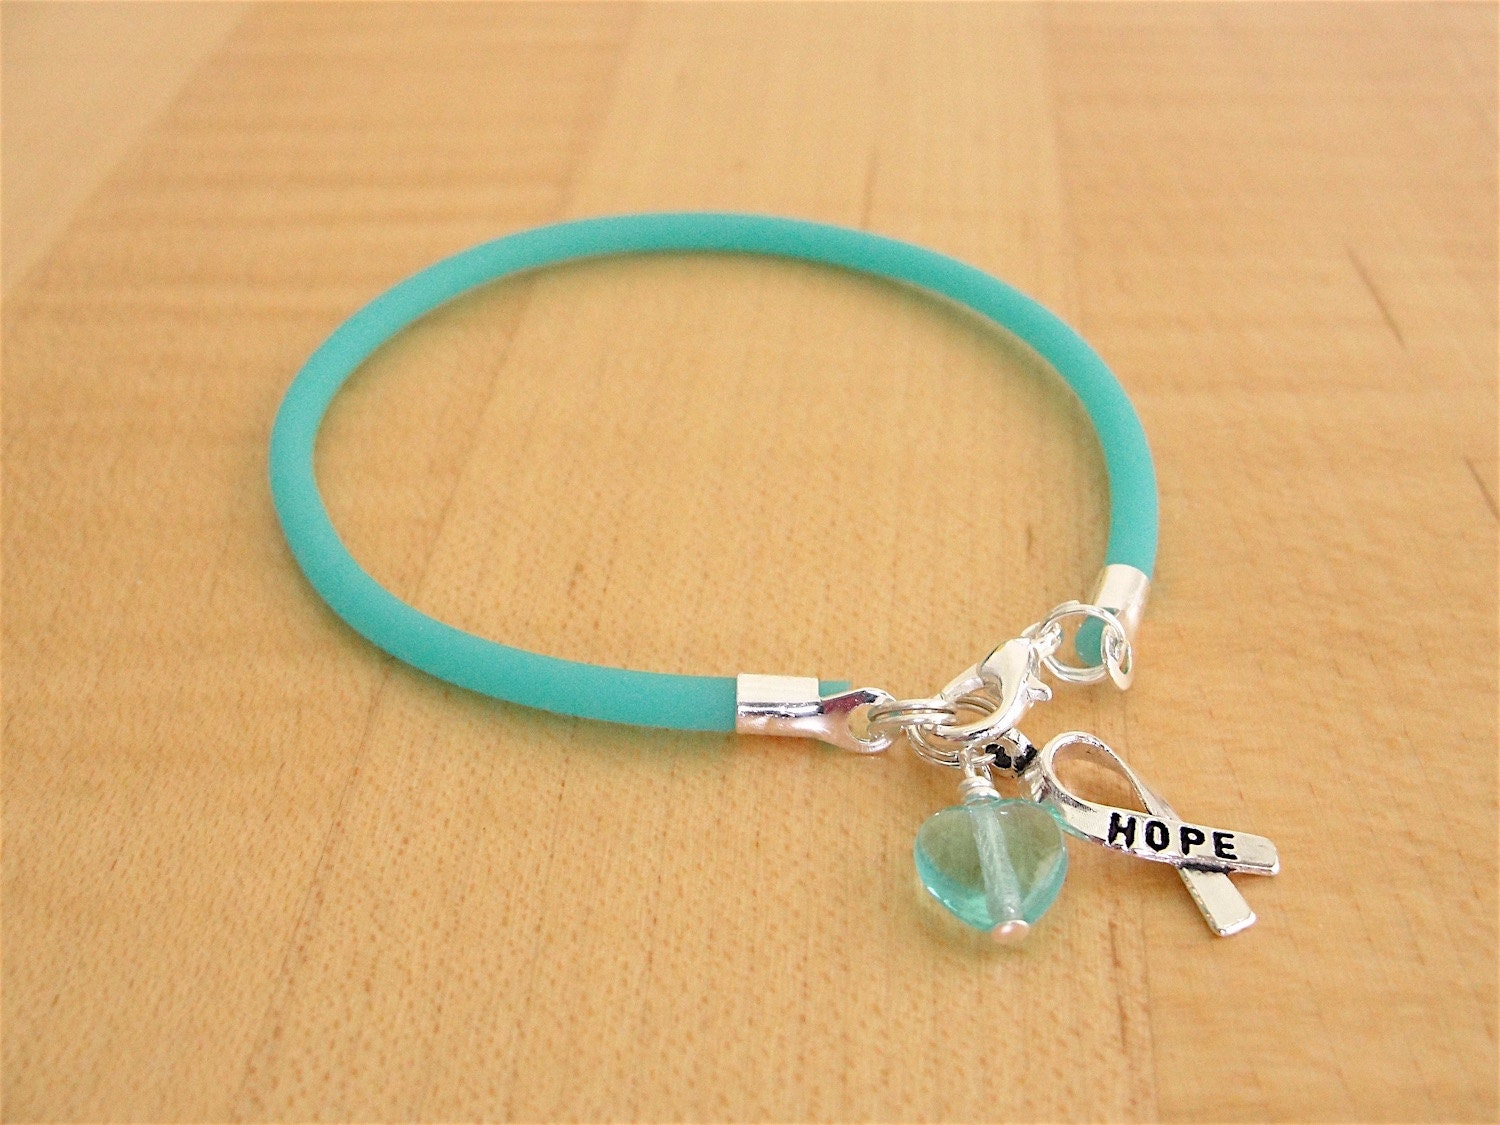 awareness bracelet ribbon on teal representation waterinu gravis art by myasthenia